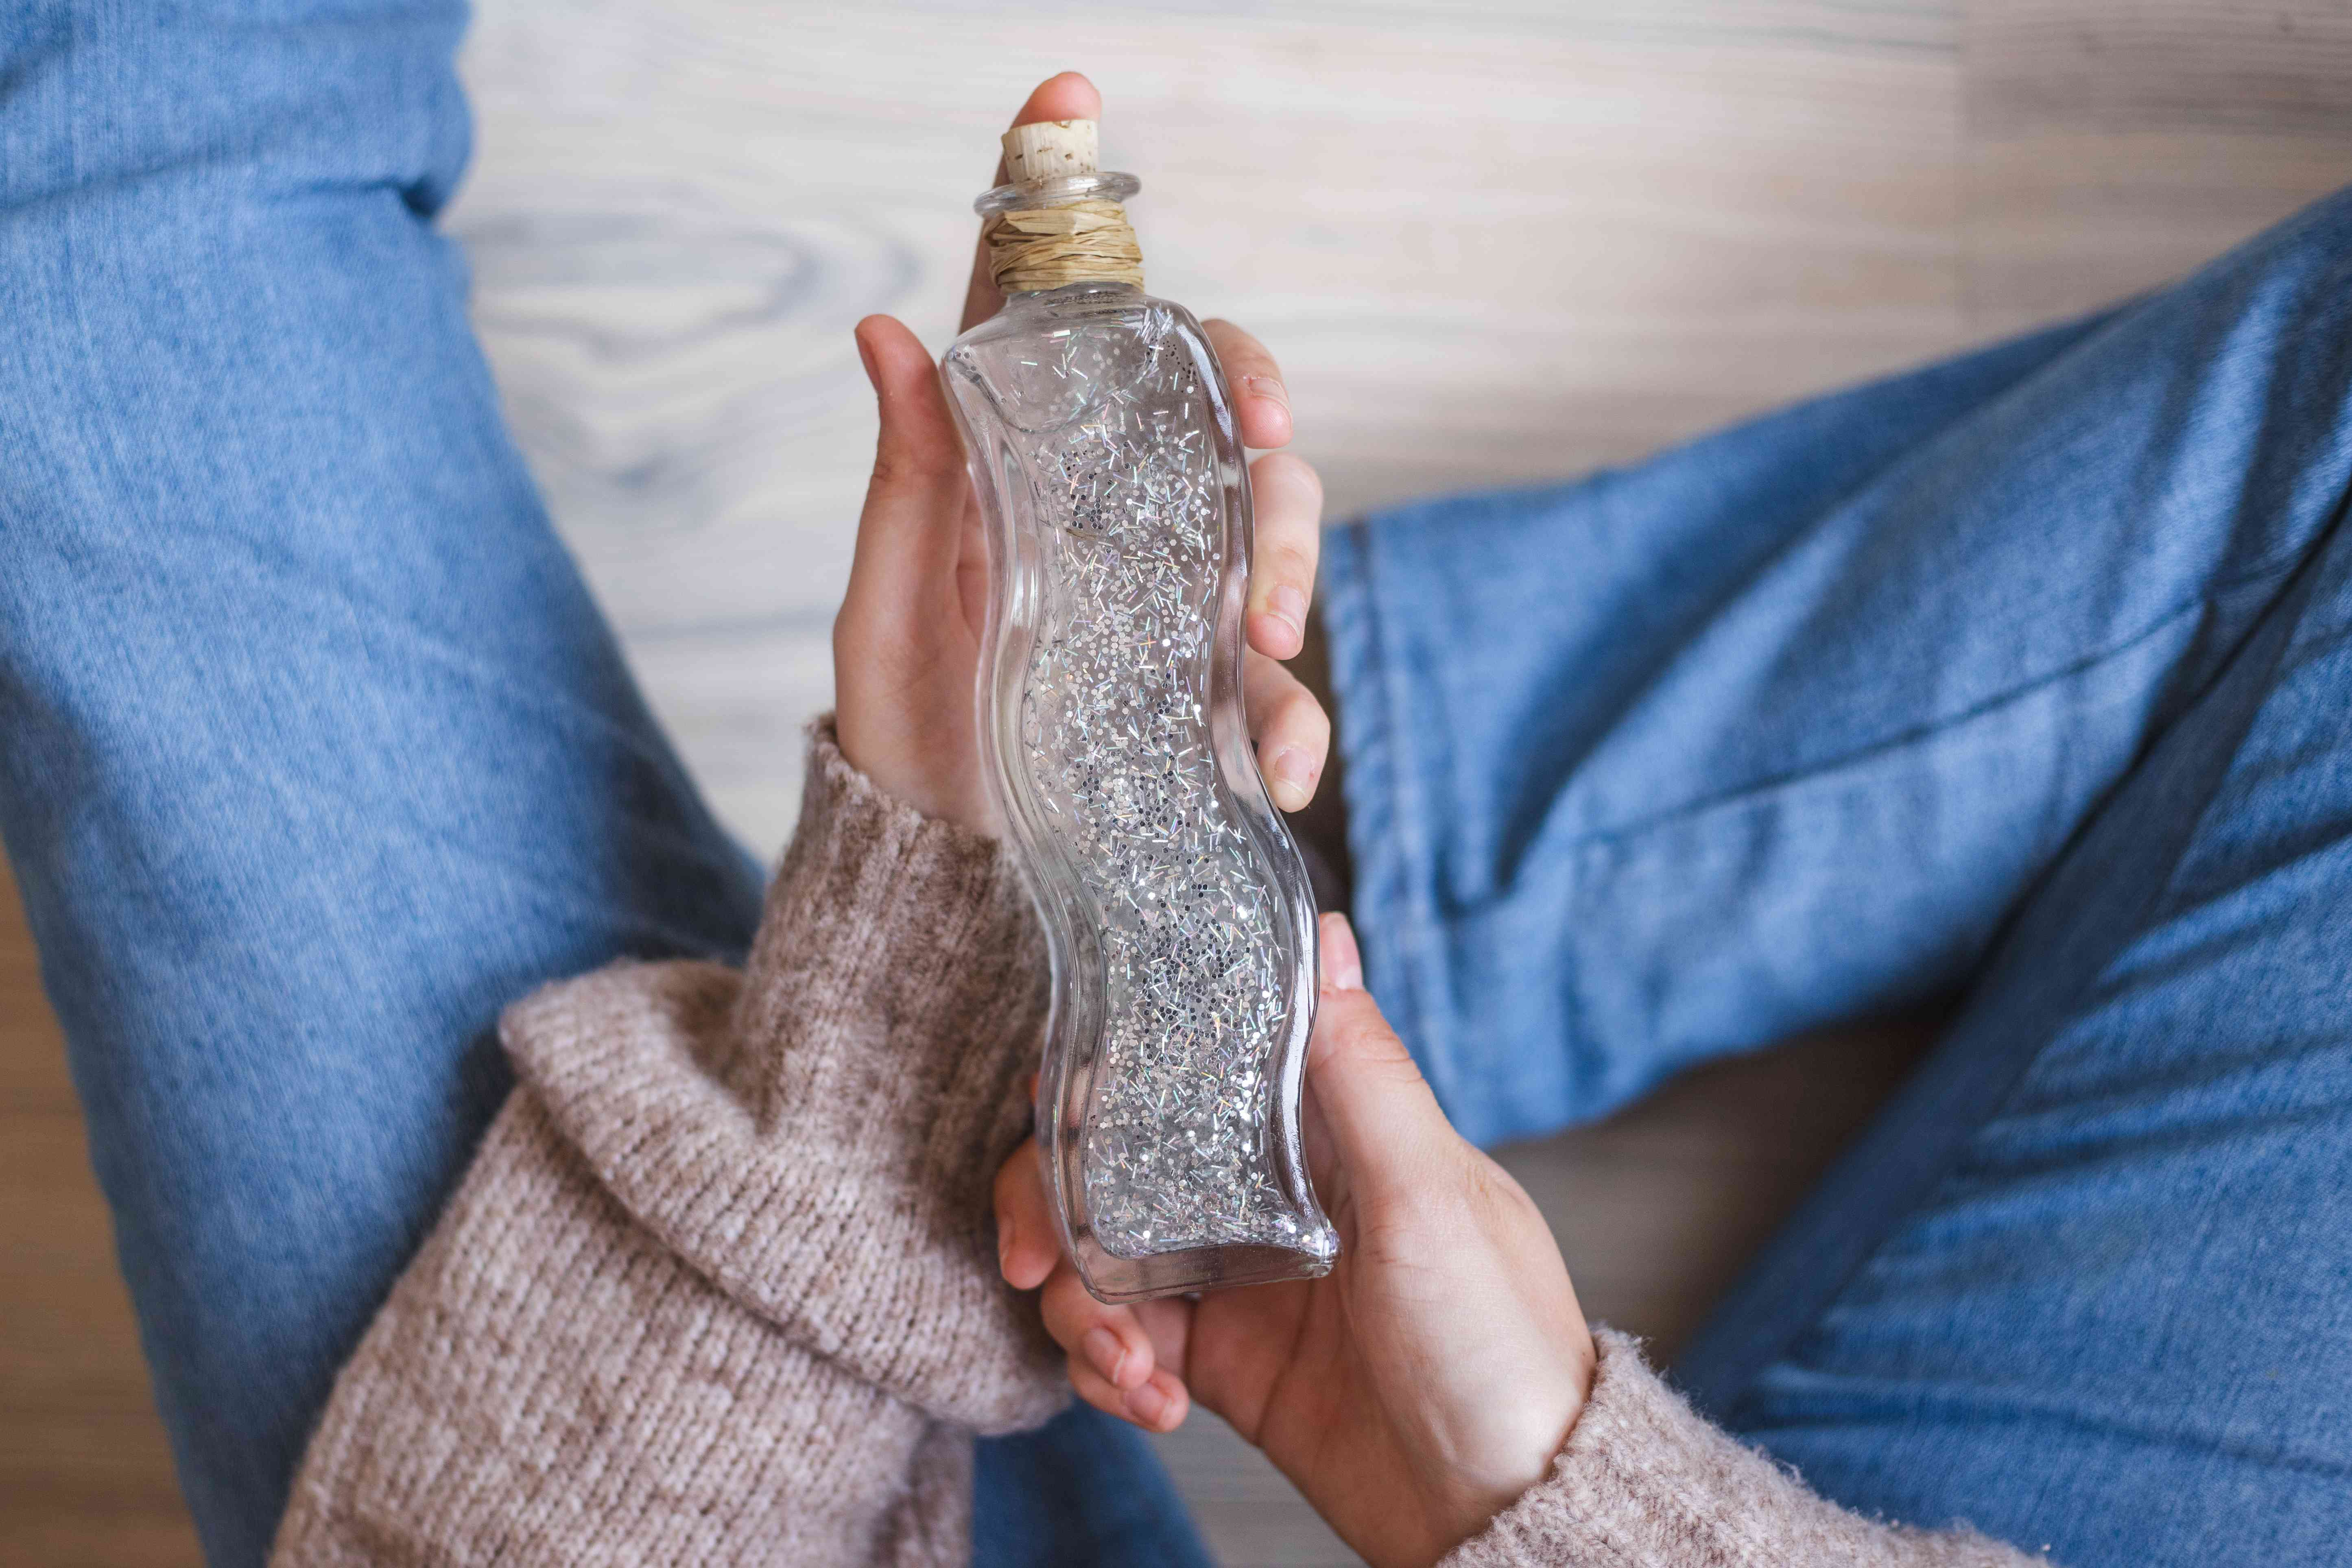 person sits on floor cradling a glass bottle filled with gooey sparkle gel for relaxation